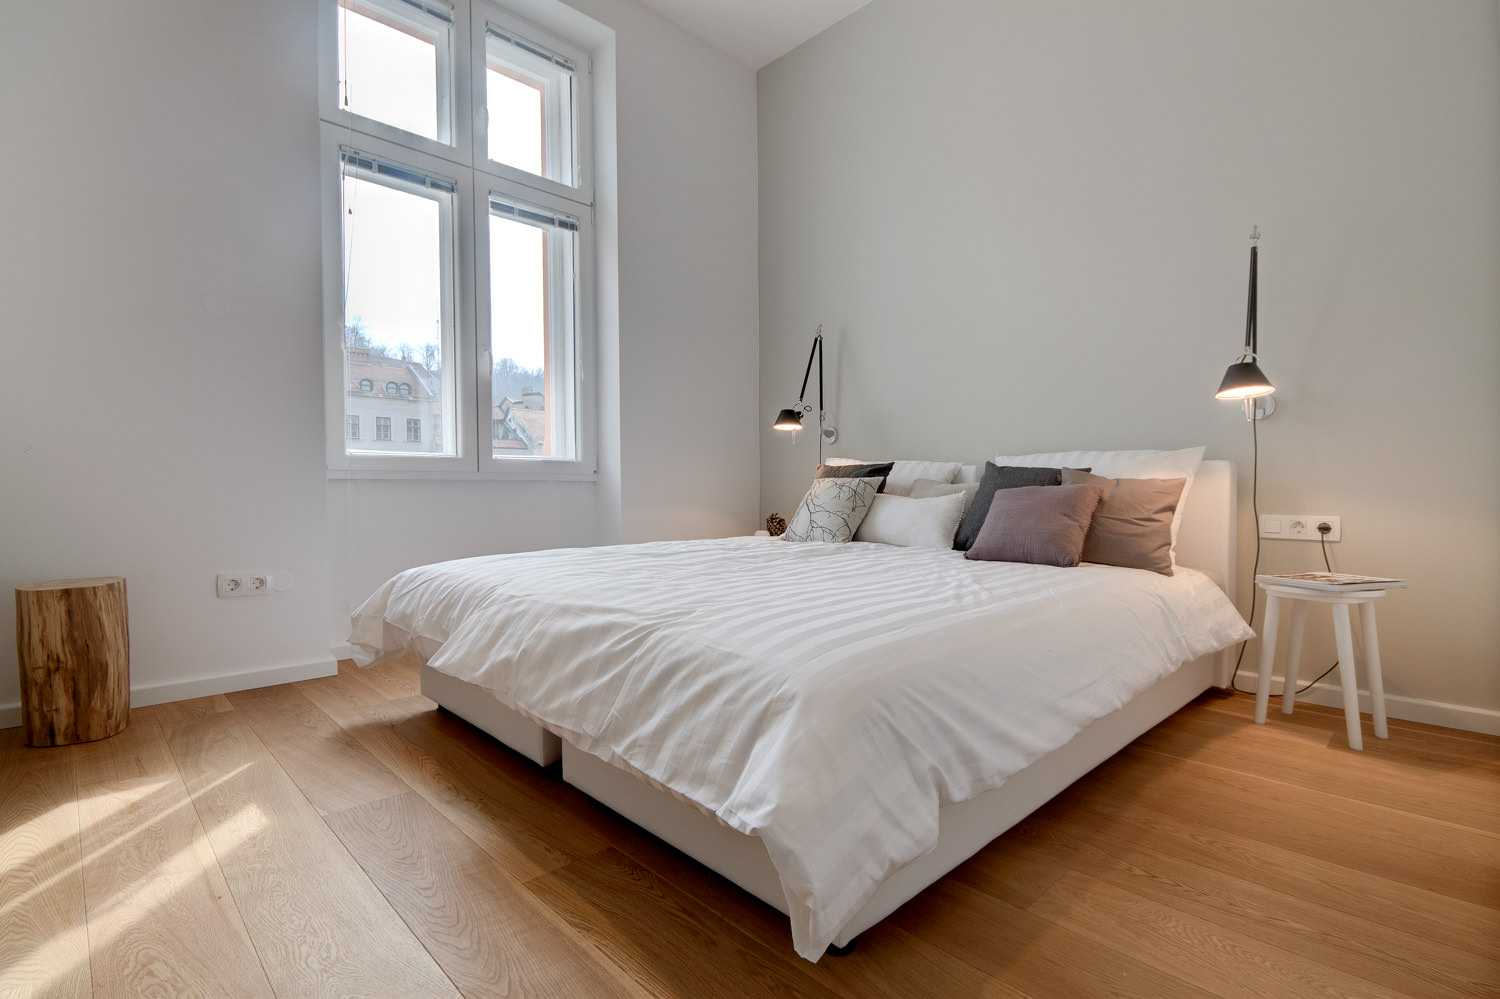 The apartment is designed in light wood and white walls.